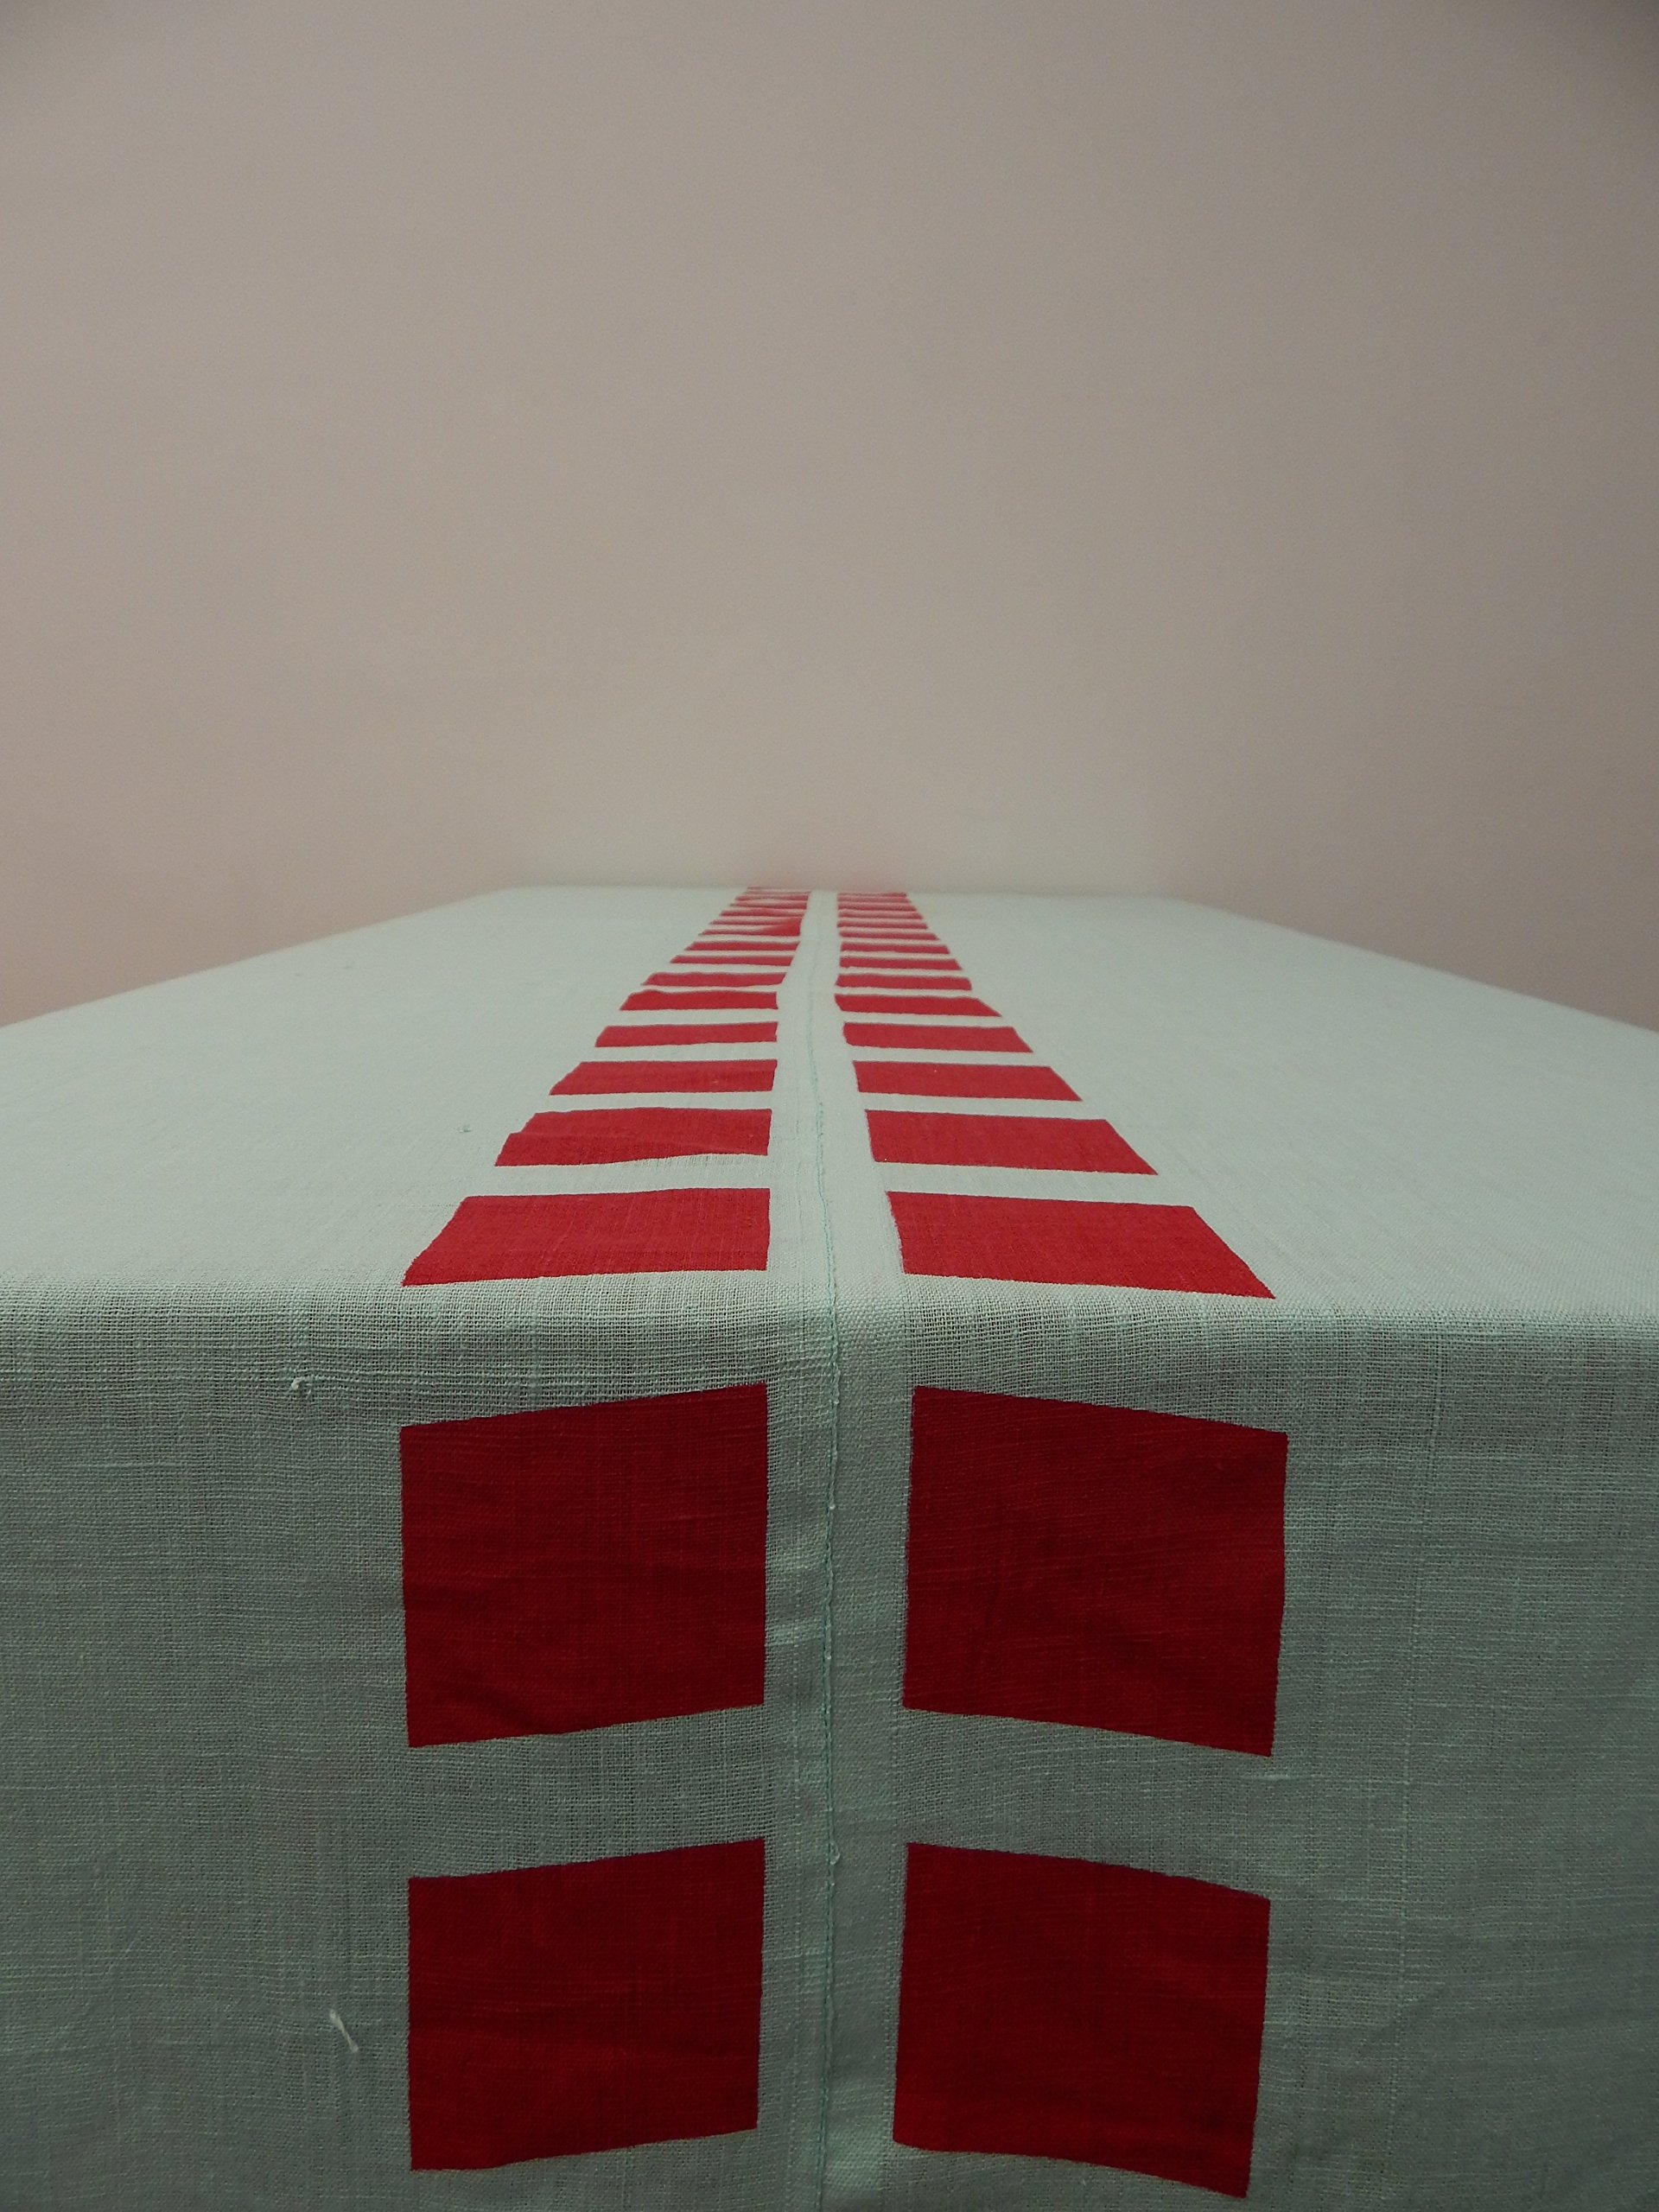 Gitika Goyal Home Cotton Khadi Red Screen Printed Tablecloth with Square Design, Blue, 72'' x 108''